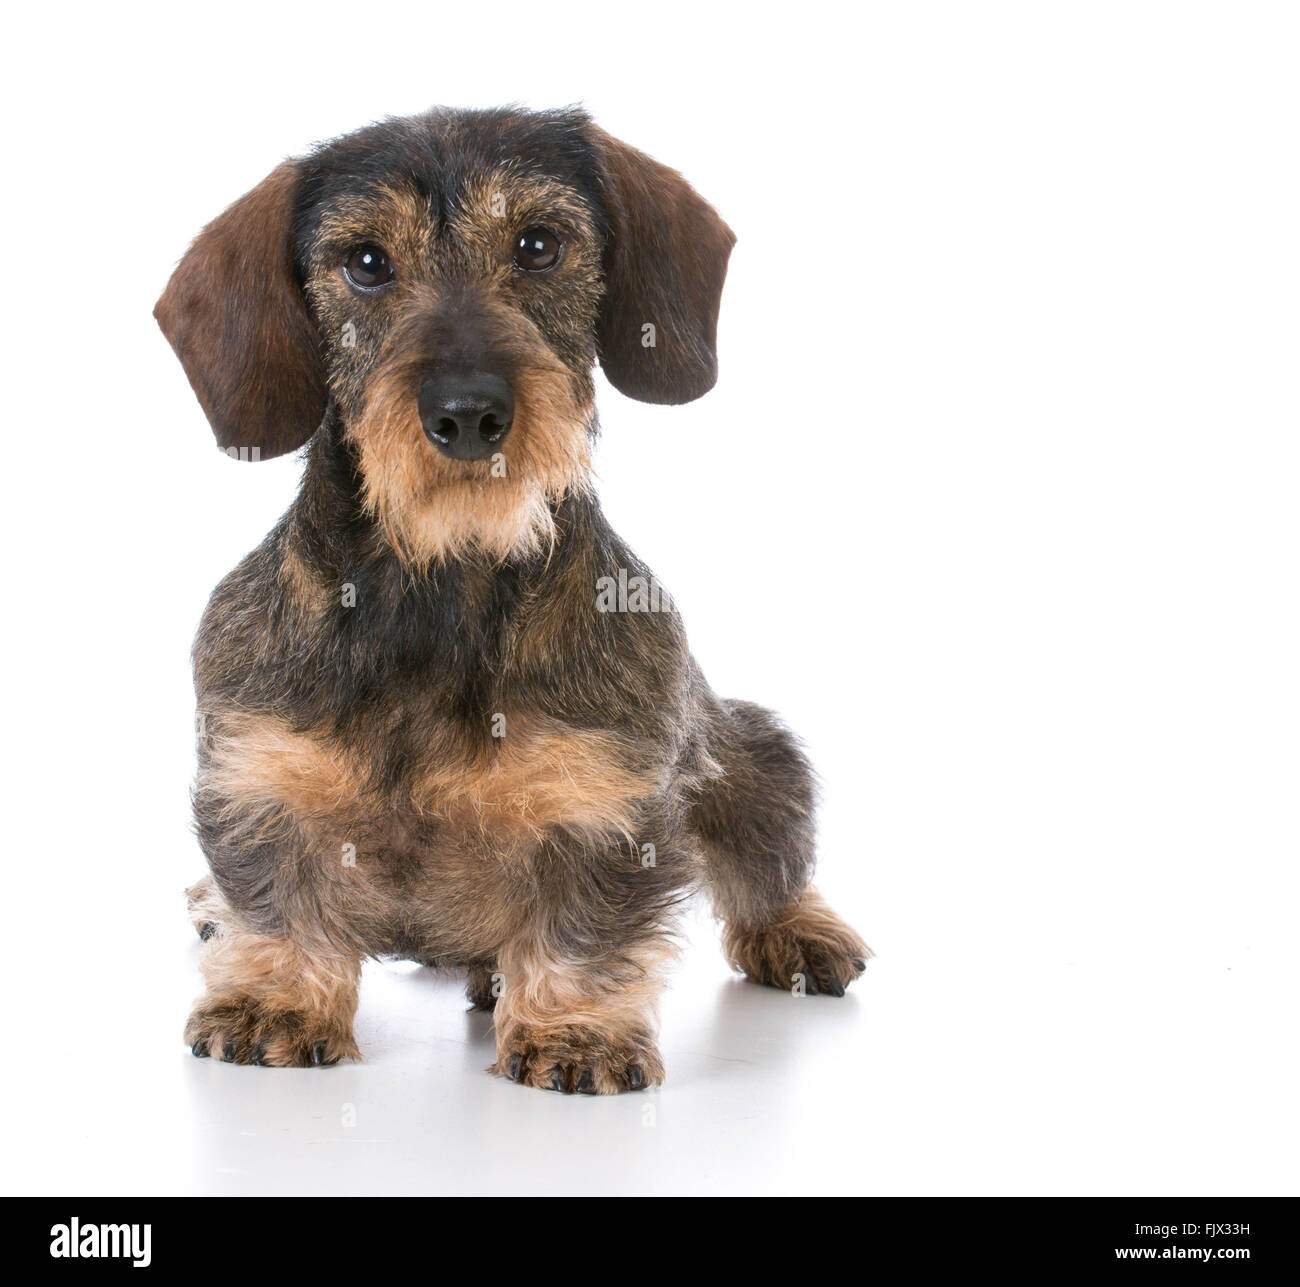 Miniature Wirehaired Stock Photos & Miniature Wirehaired Stock ...